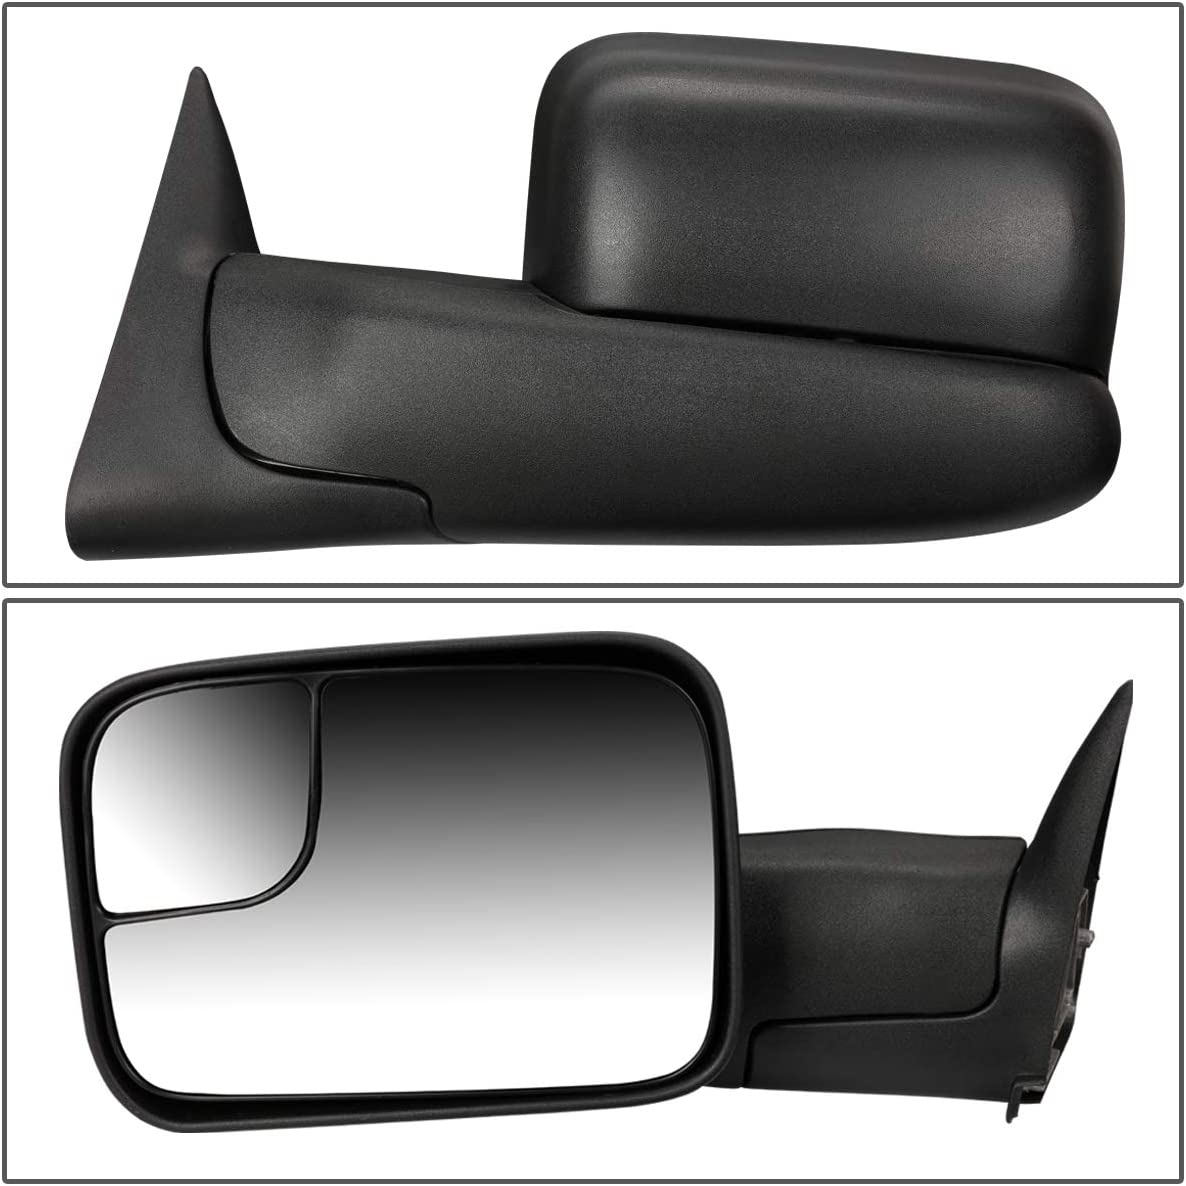 Right//Passenger For Dodge Ram Truck Manual Adjustment+Flip Up Tow Towing Side Mirror